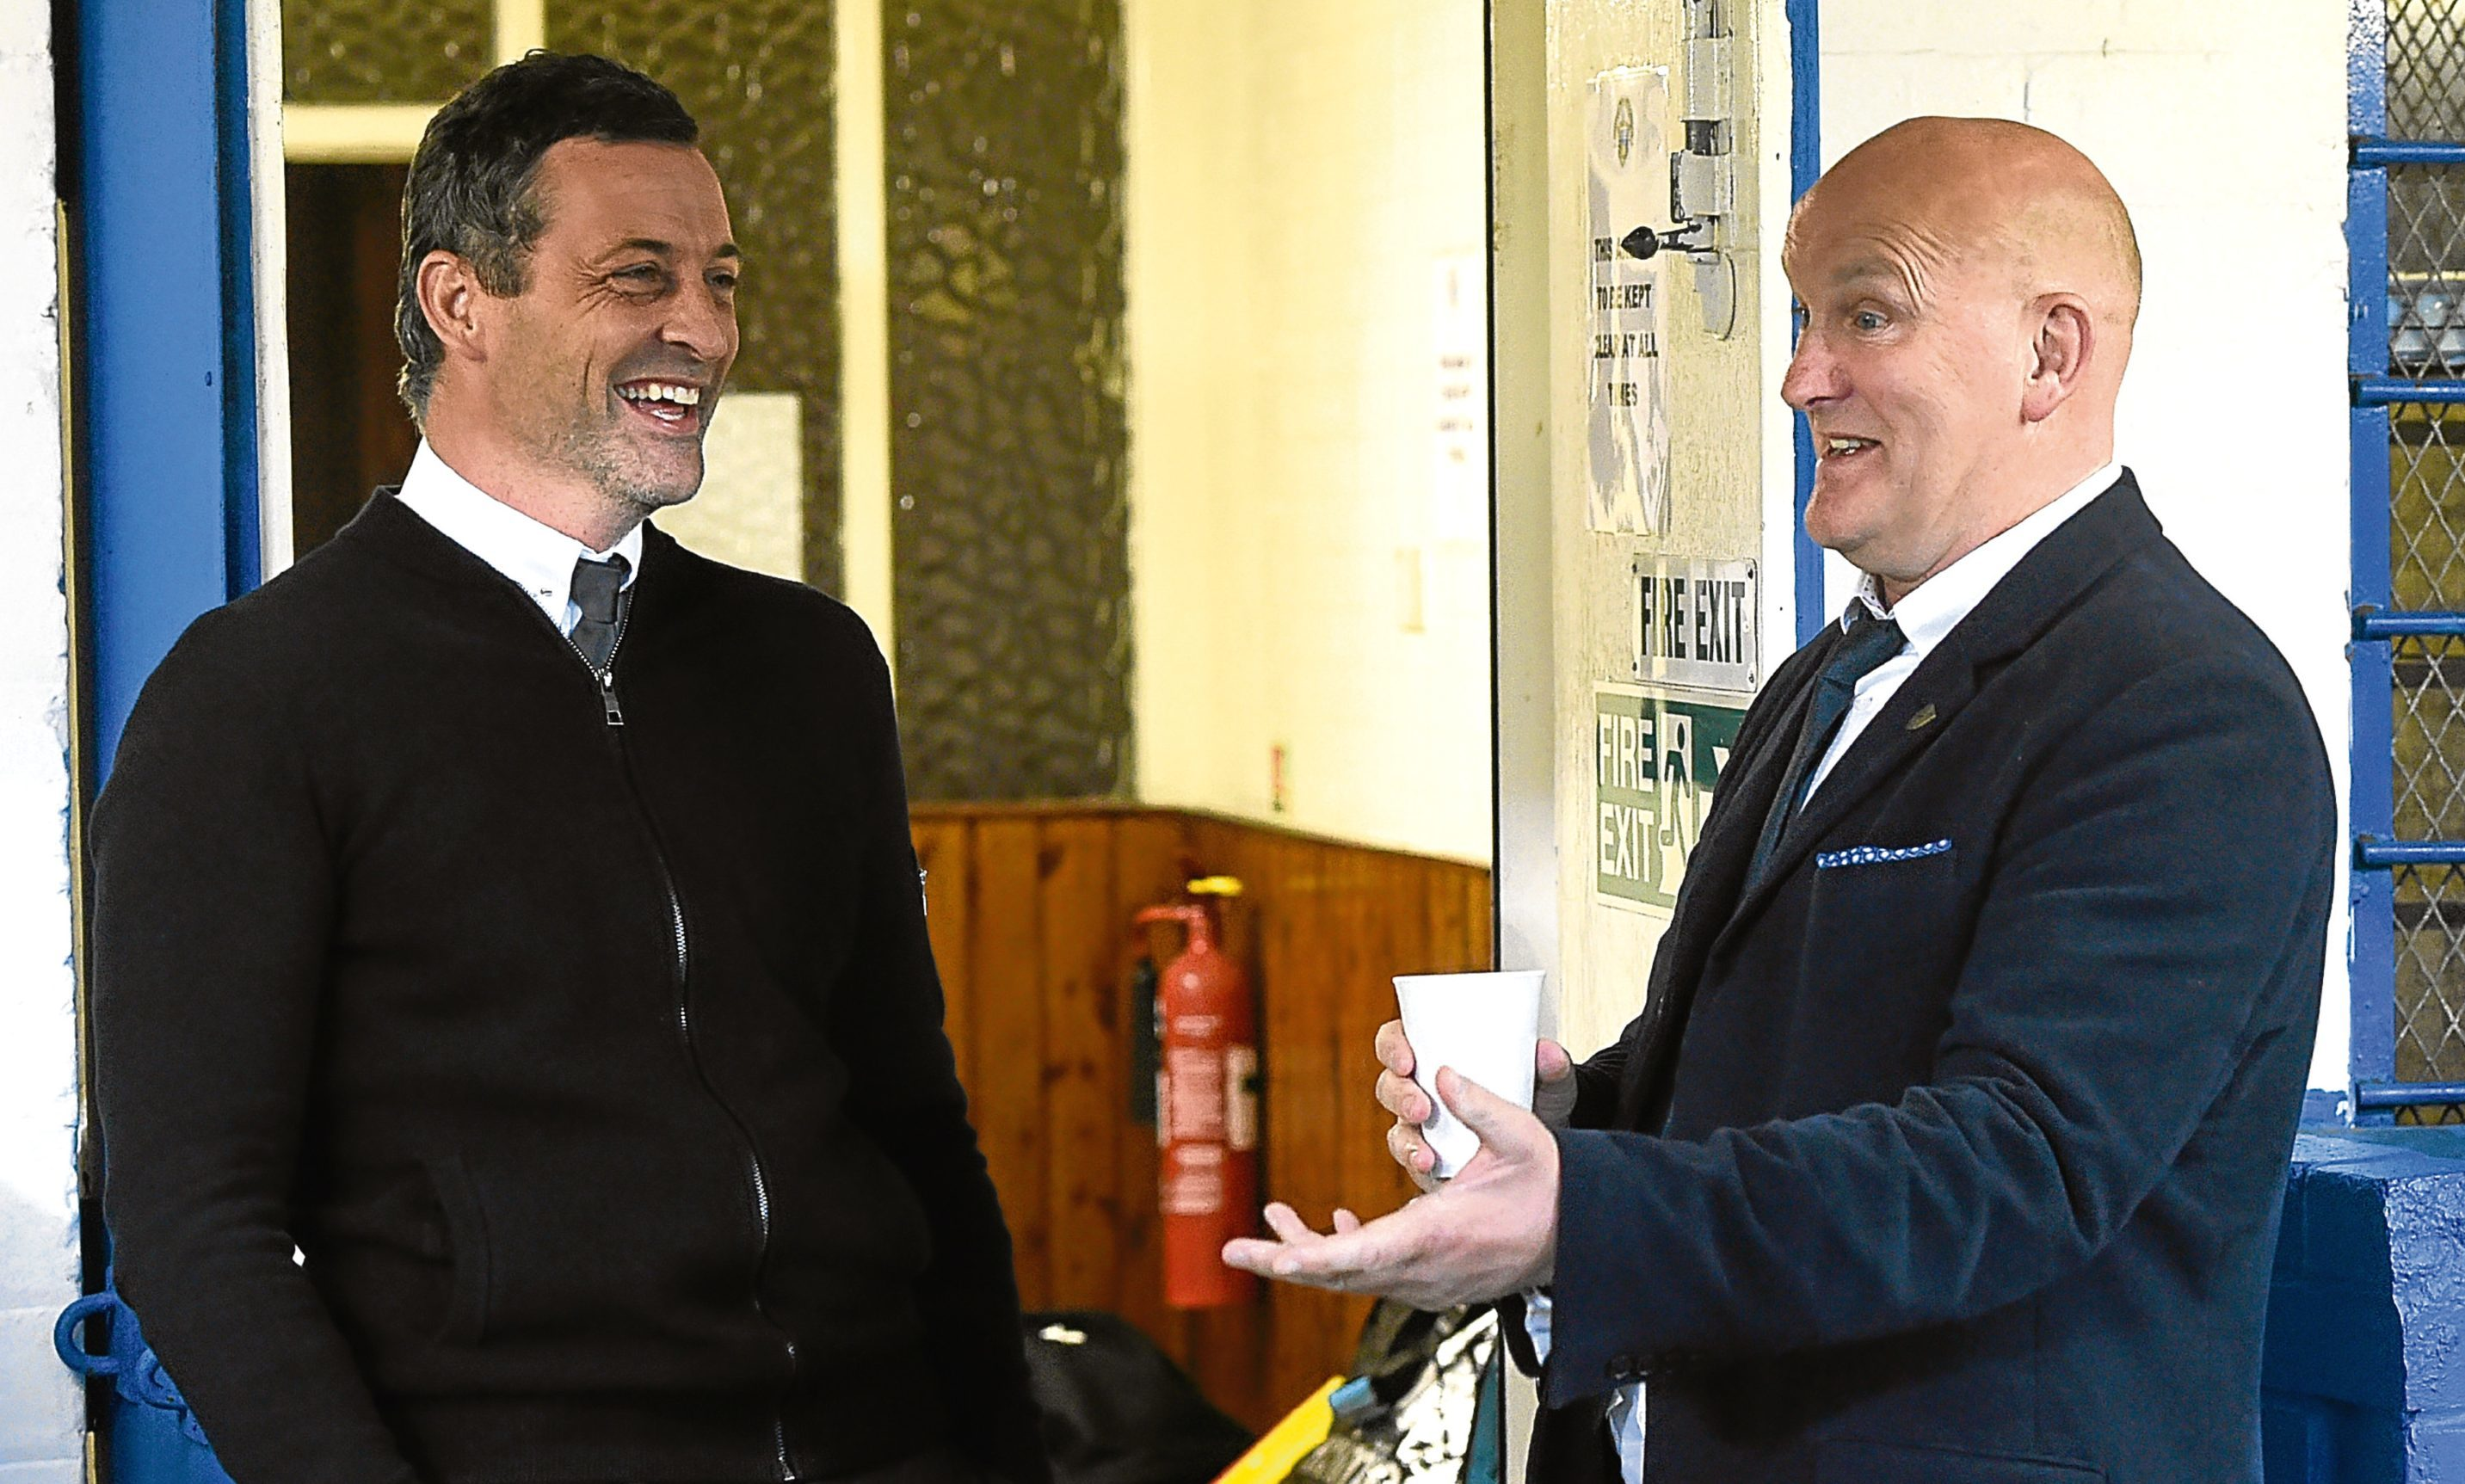 Jack Ross (left) is listed as the bookies' favourite to take the hotseat at Dens, with names like former Dark Blues boss Jim Duffy also being touted.